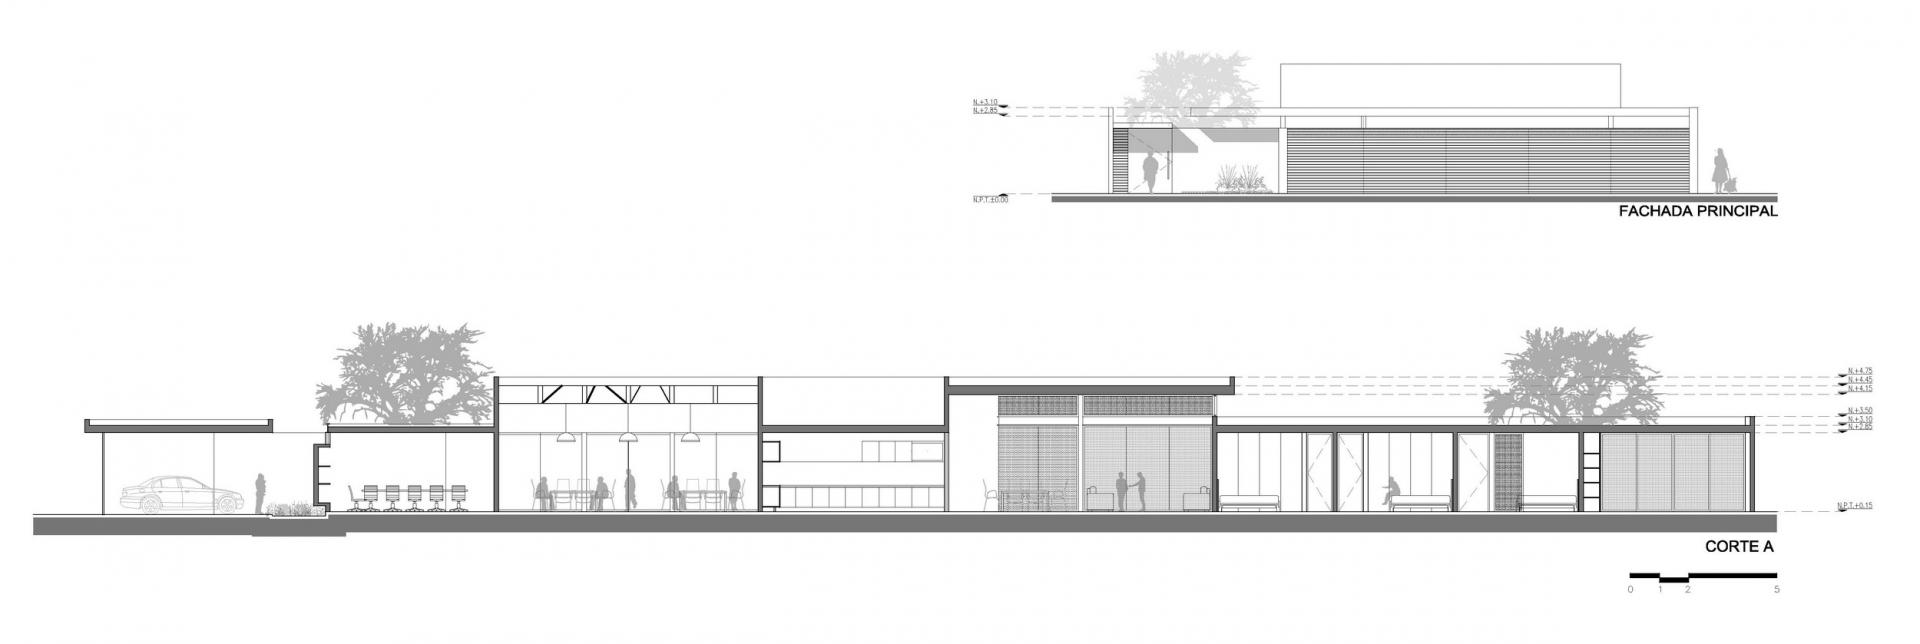 TCH HOUSE SECTION ELEVATION